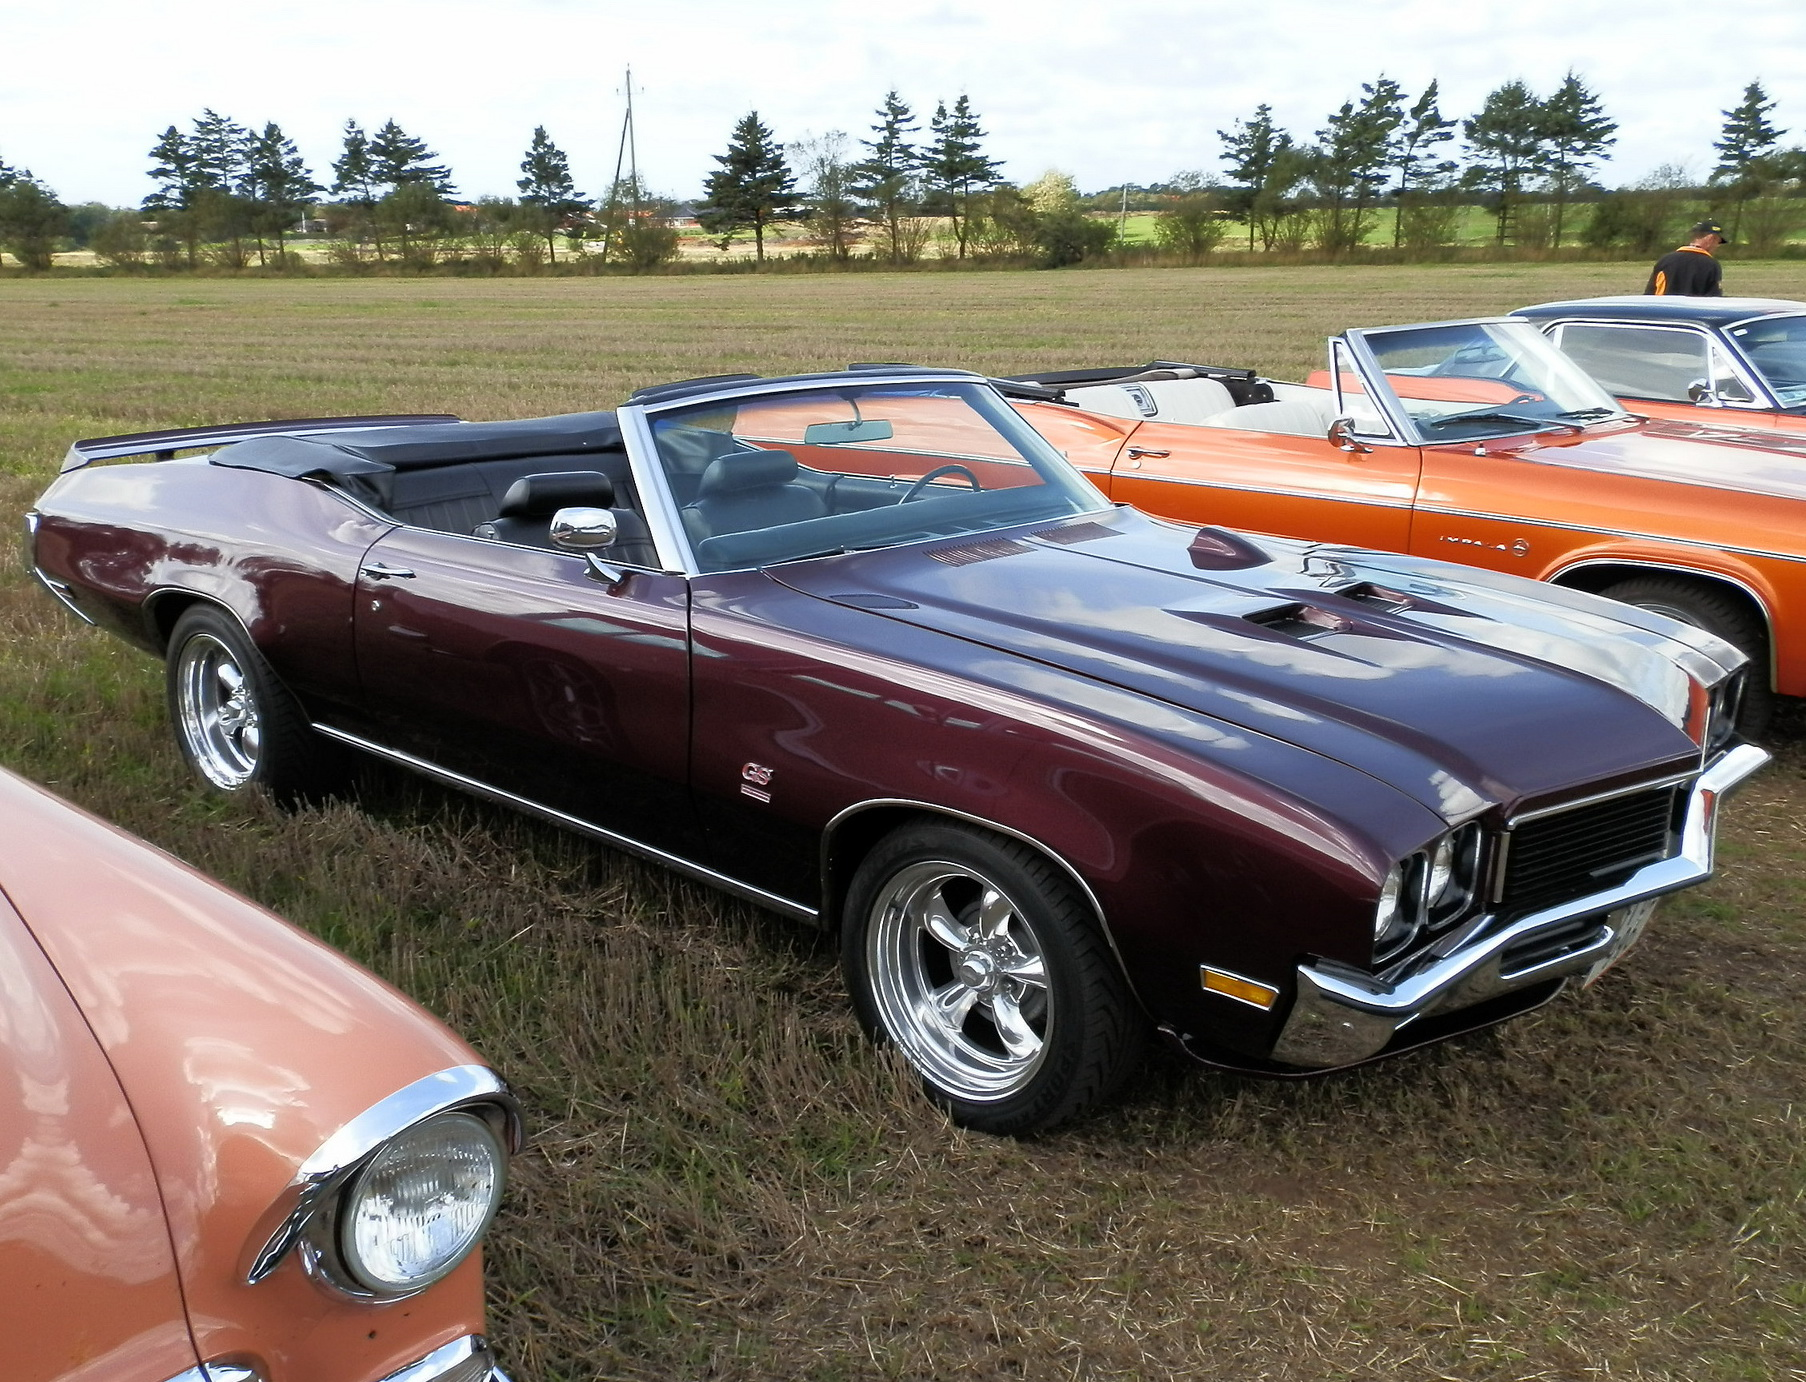 1972 Buick GS.